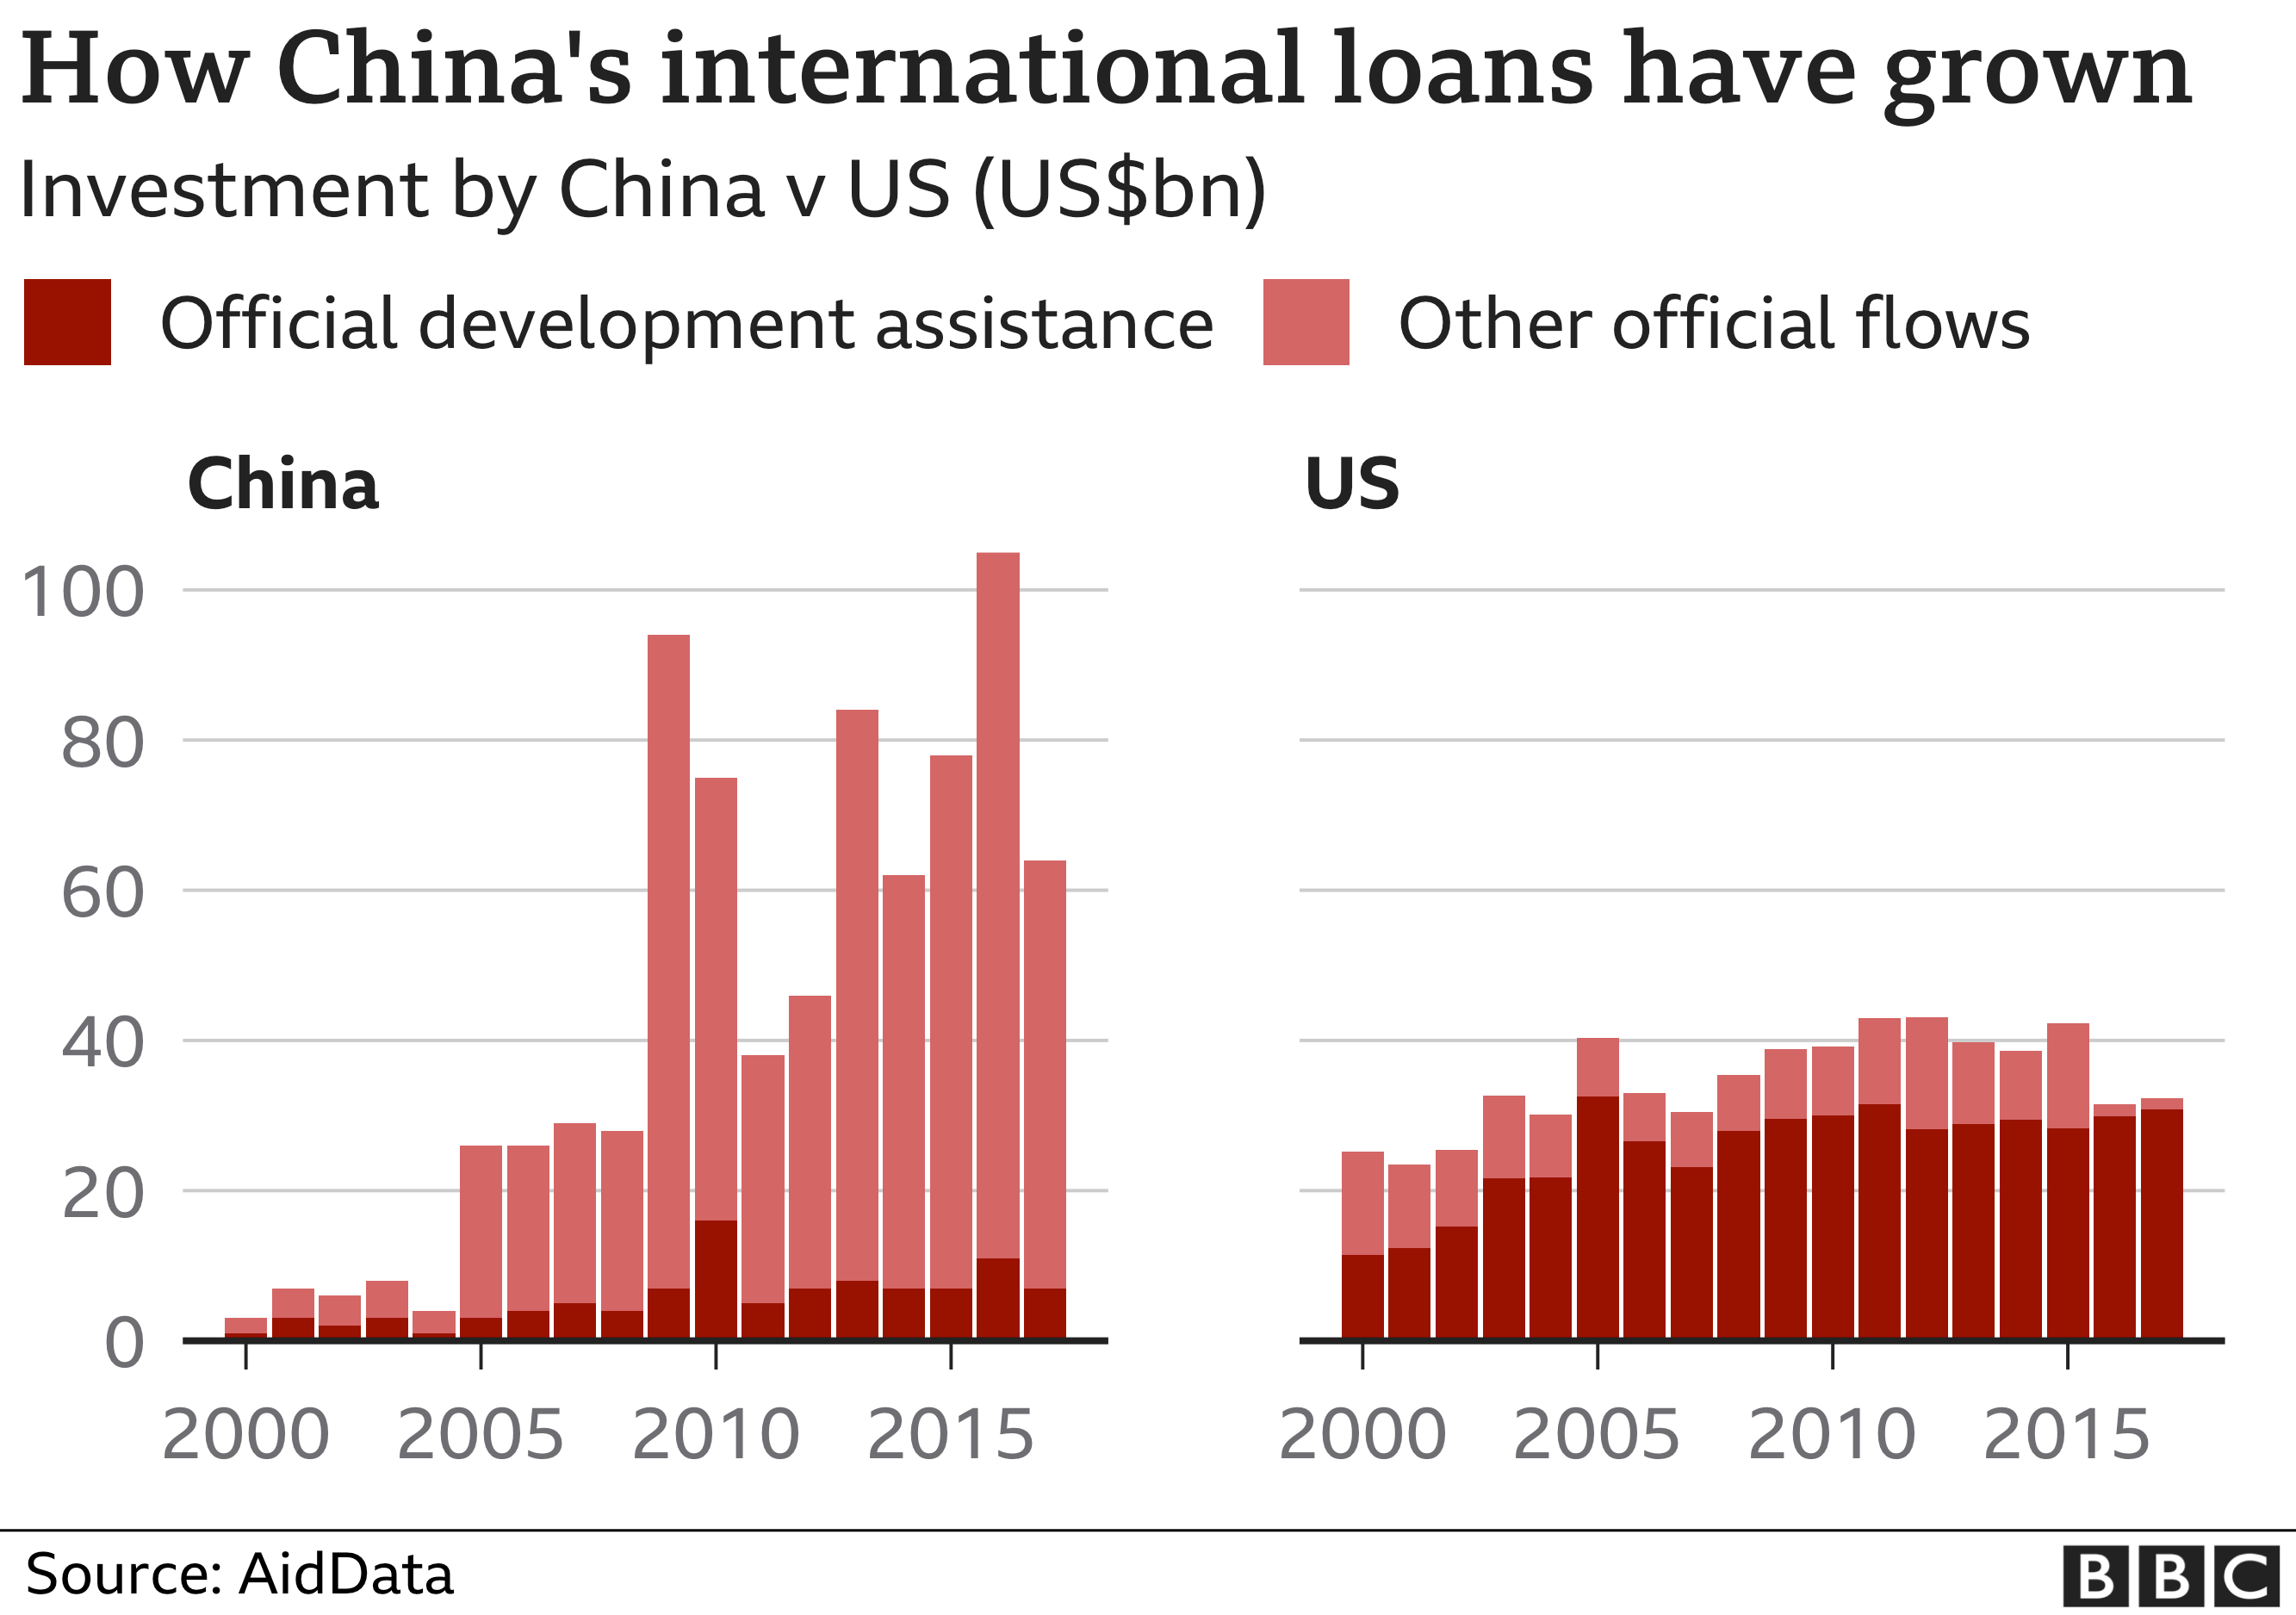 Chart showing how China's international loans have grown to exceed those of the US.